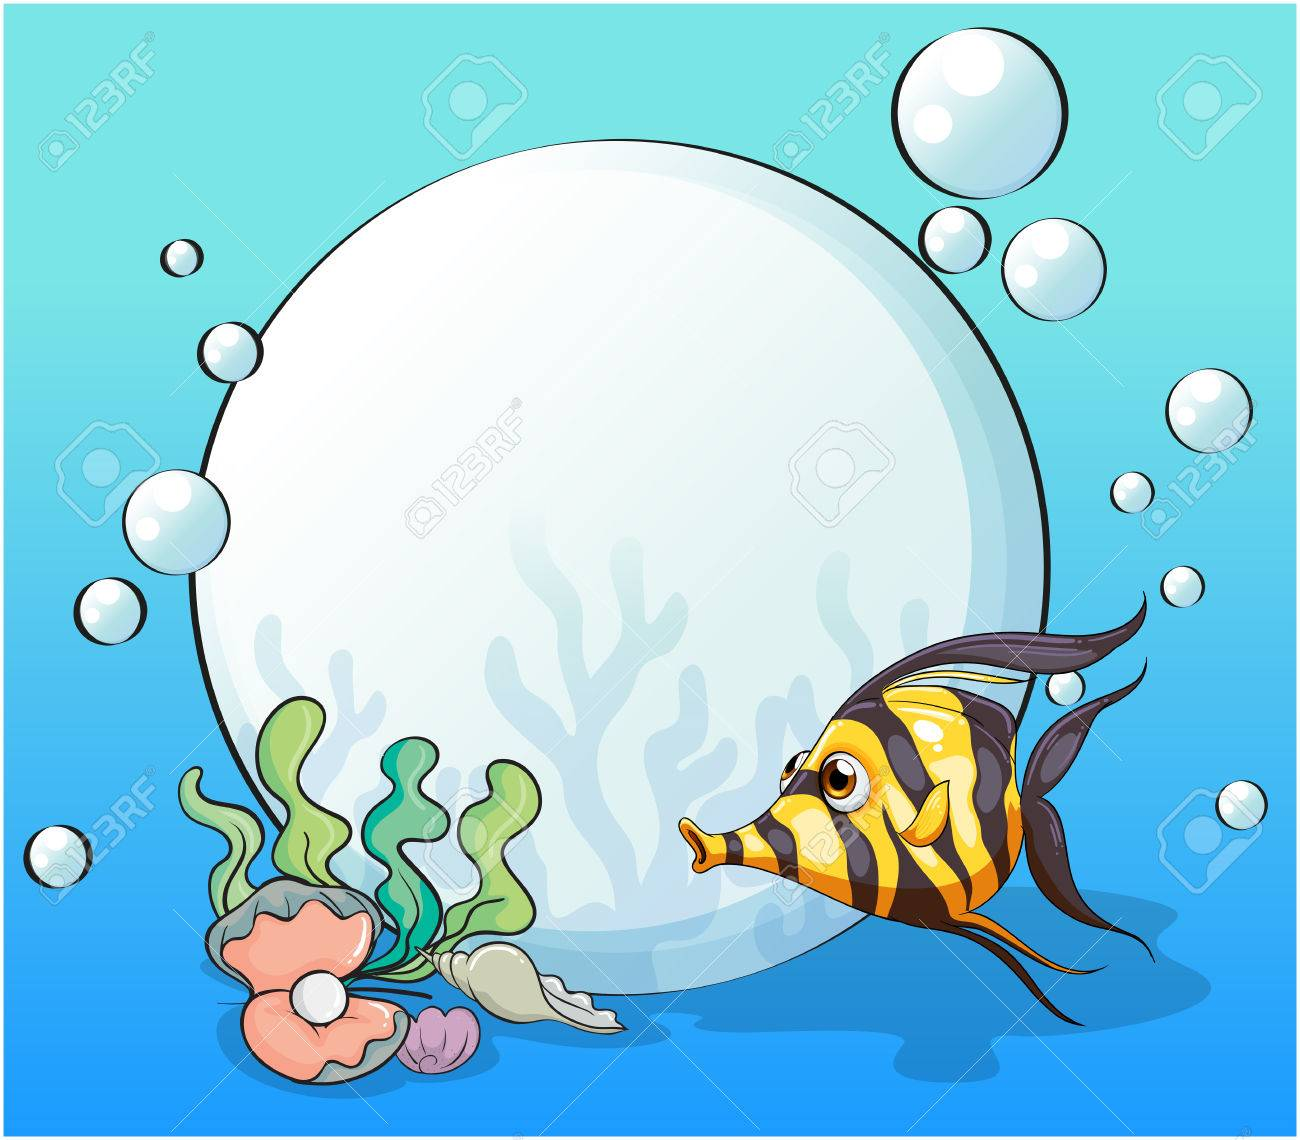 Animated Pictures Of Seashells illustration of an ocean with a fish and seashells